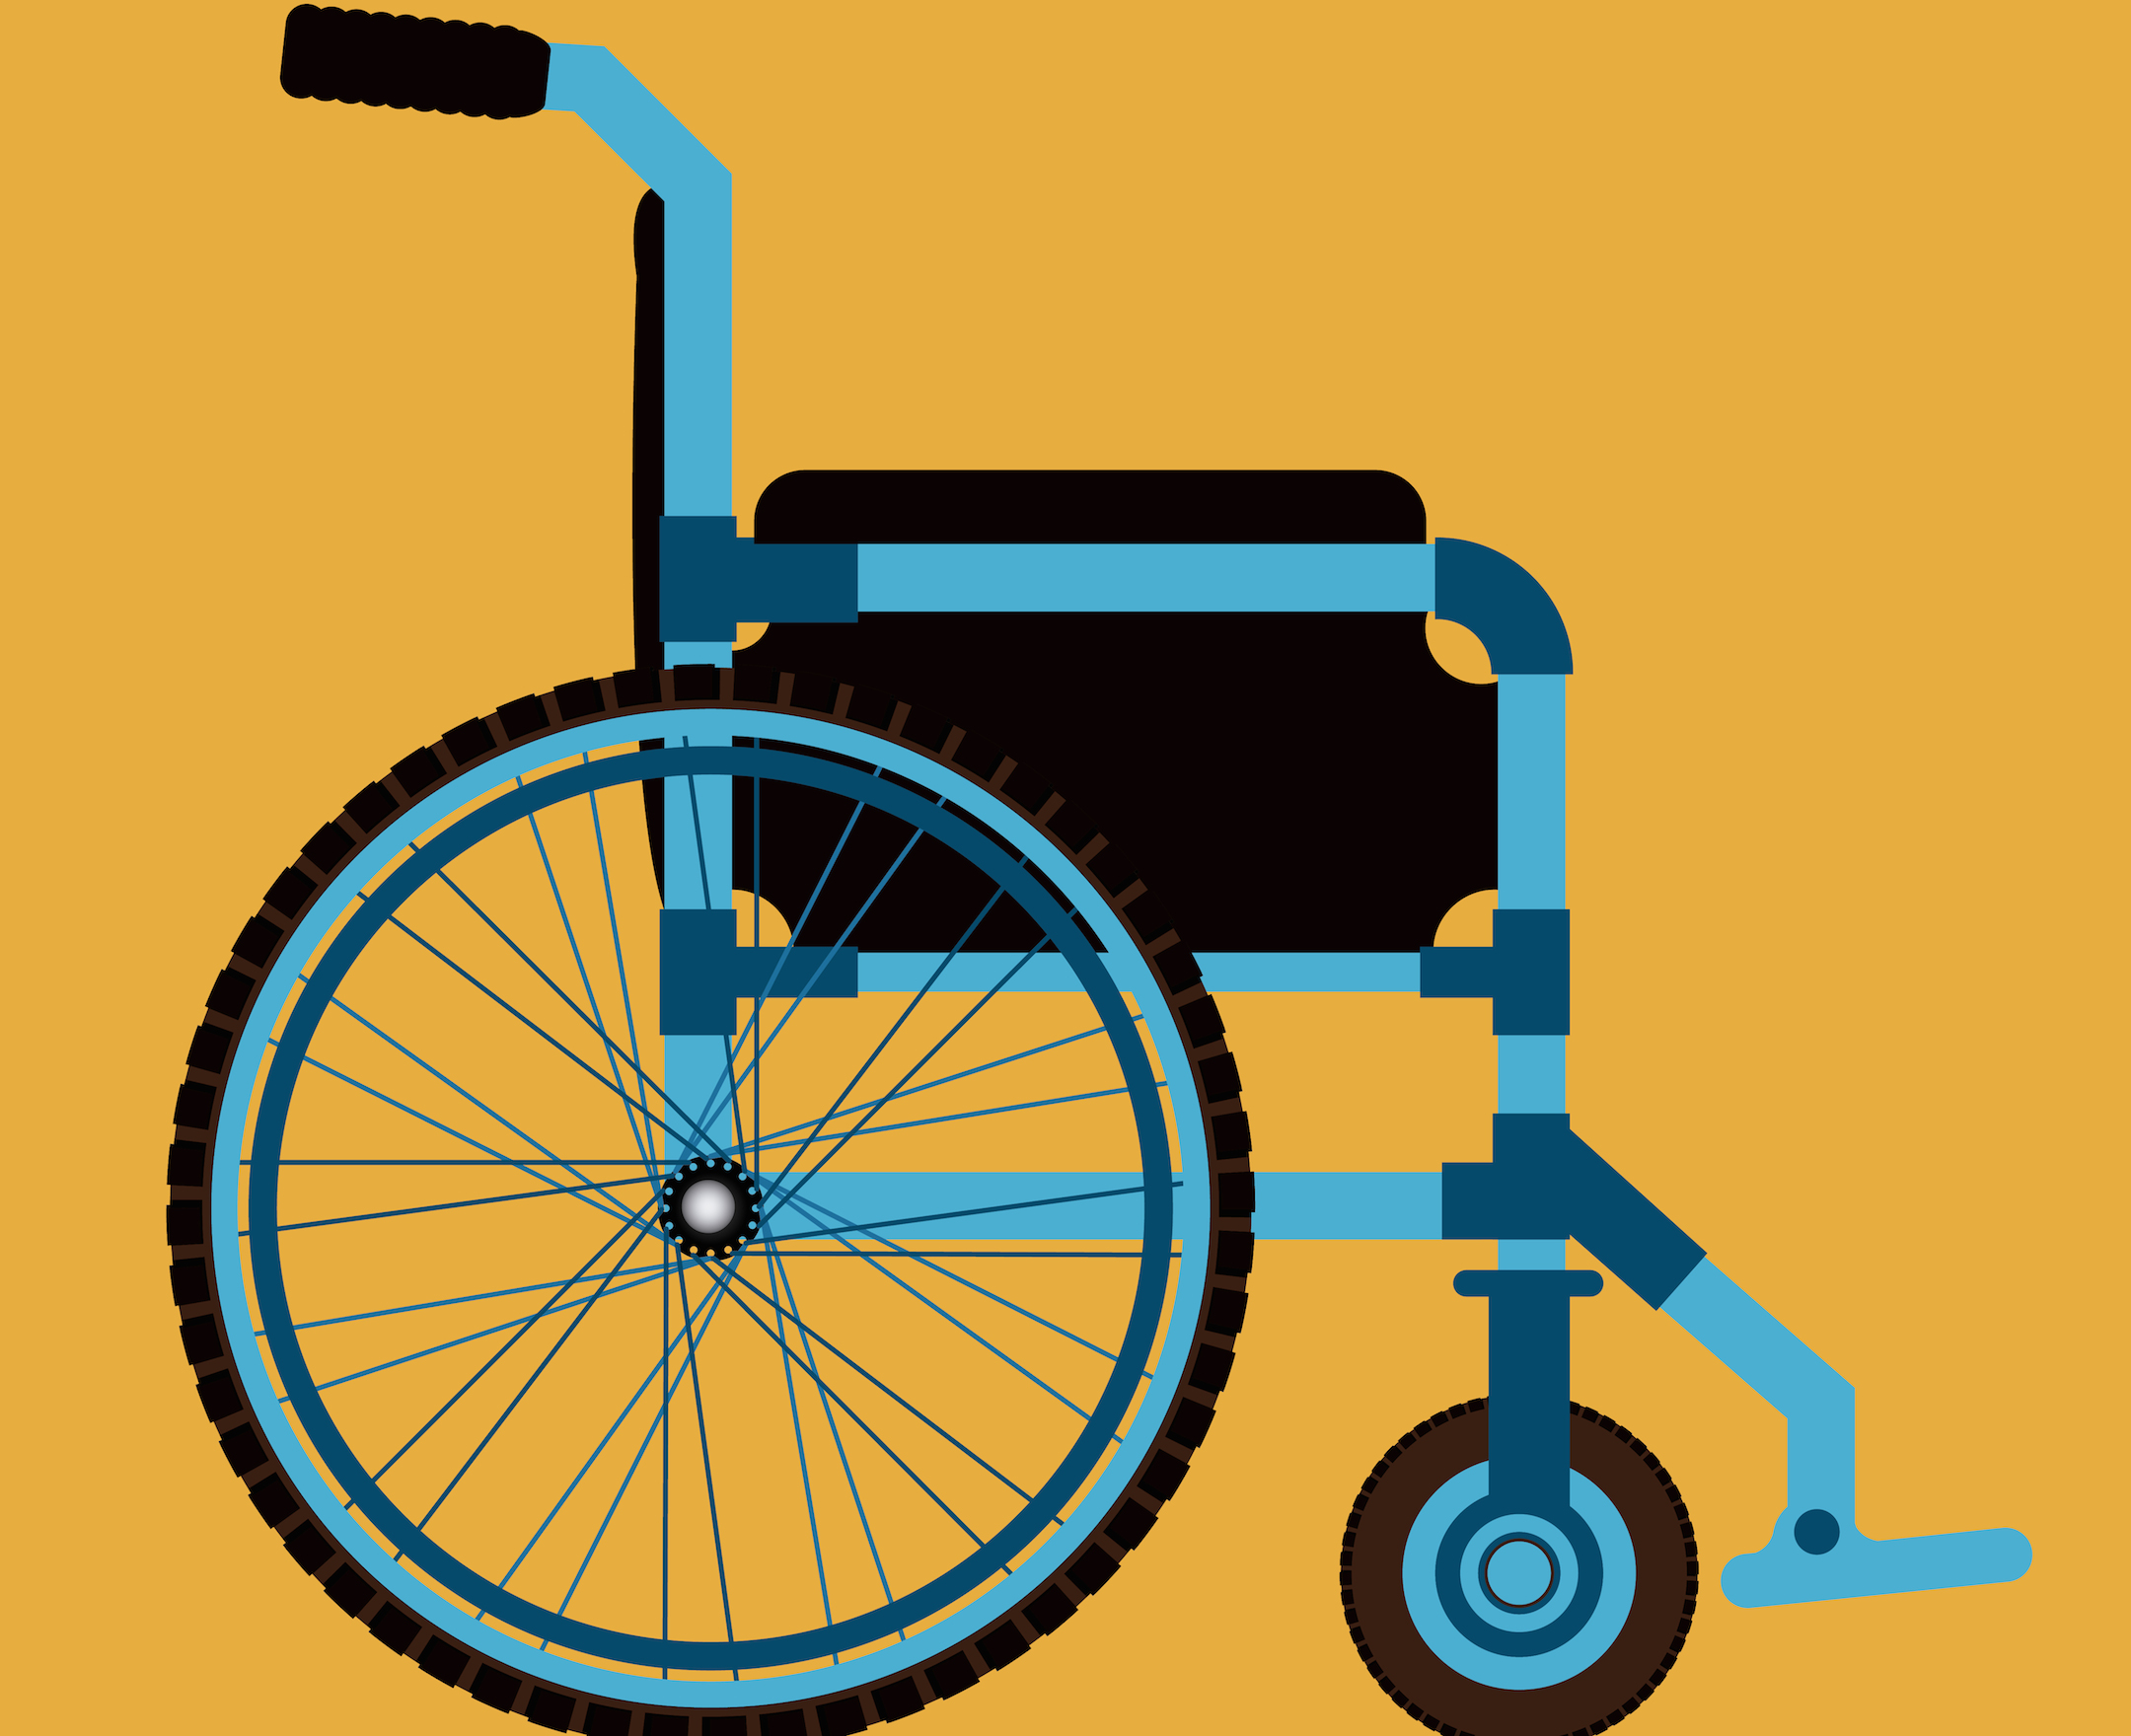 Disabled design over yellow background, vector illustration